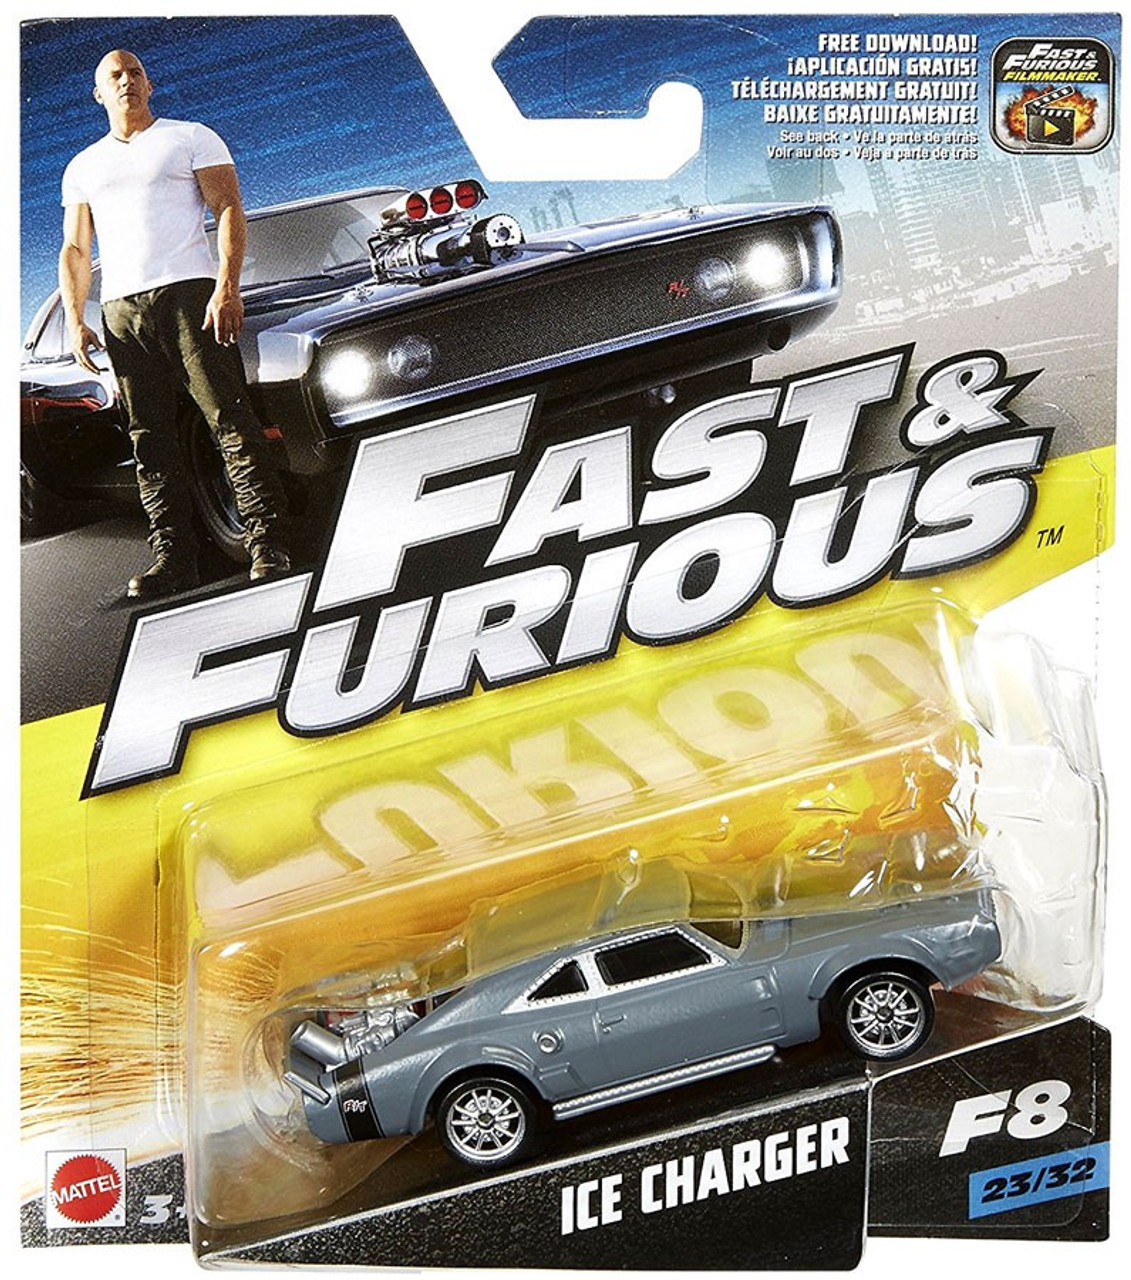 the fast and the furious f8 ice charger diecast car 2332 mattel toys toywiz. Black Bedroom Furniture Sets. Home Design Ideas